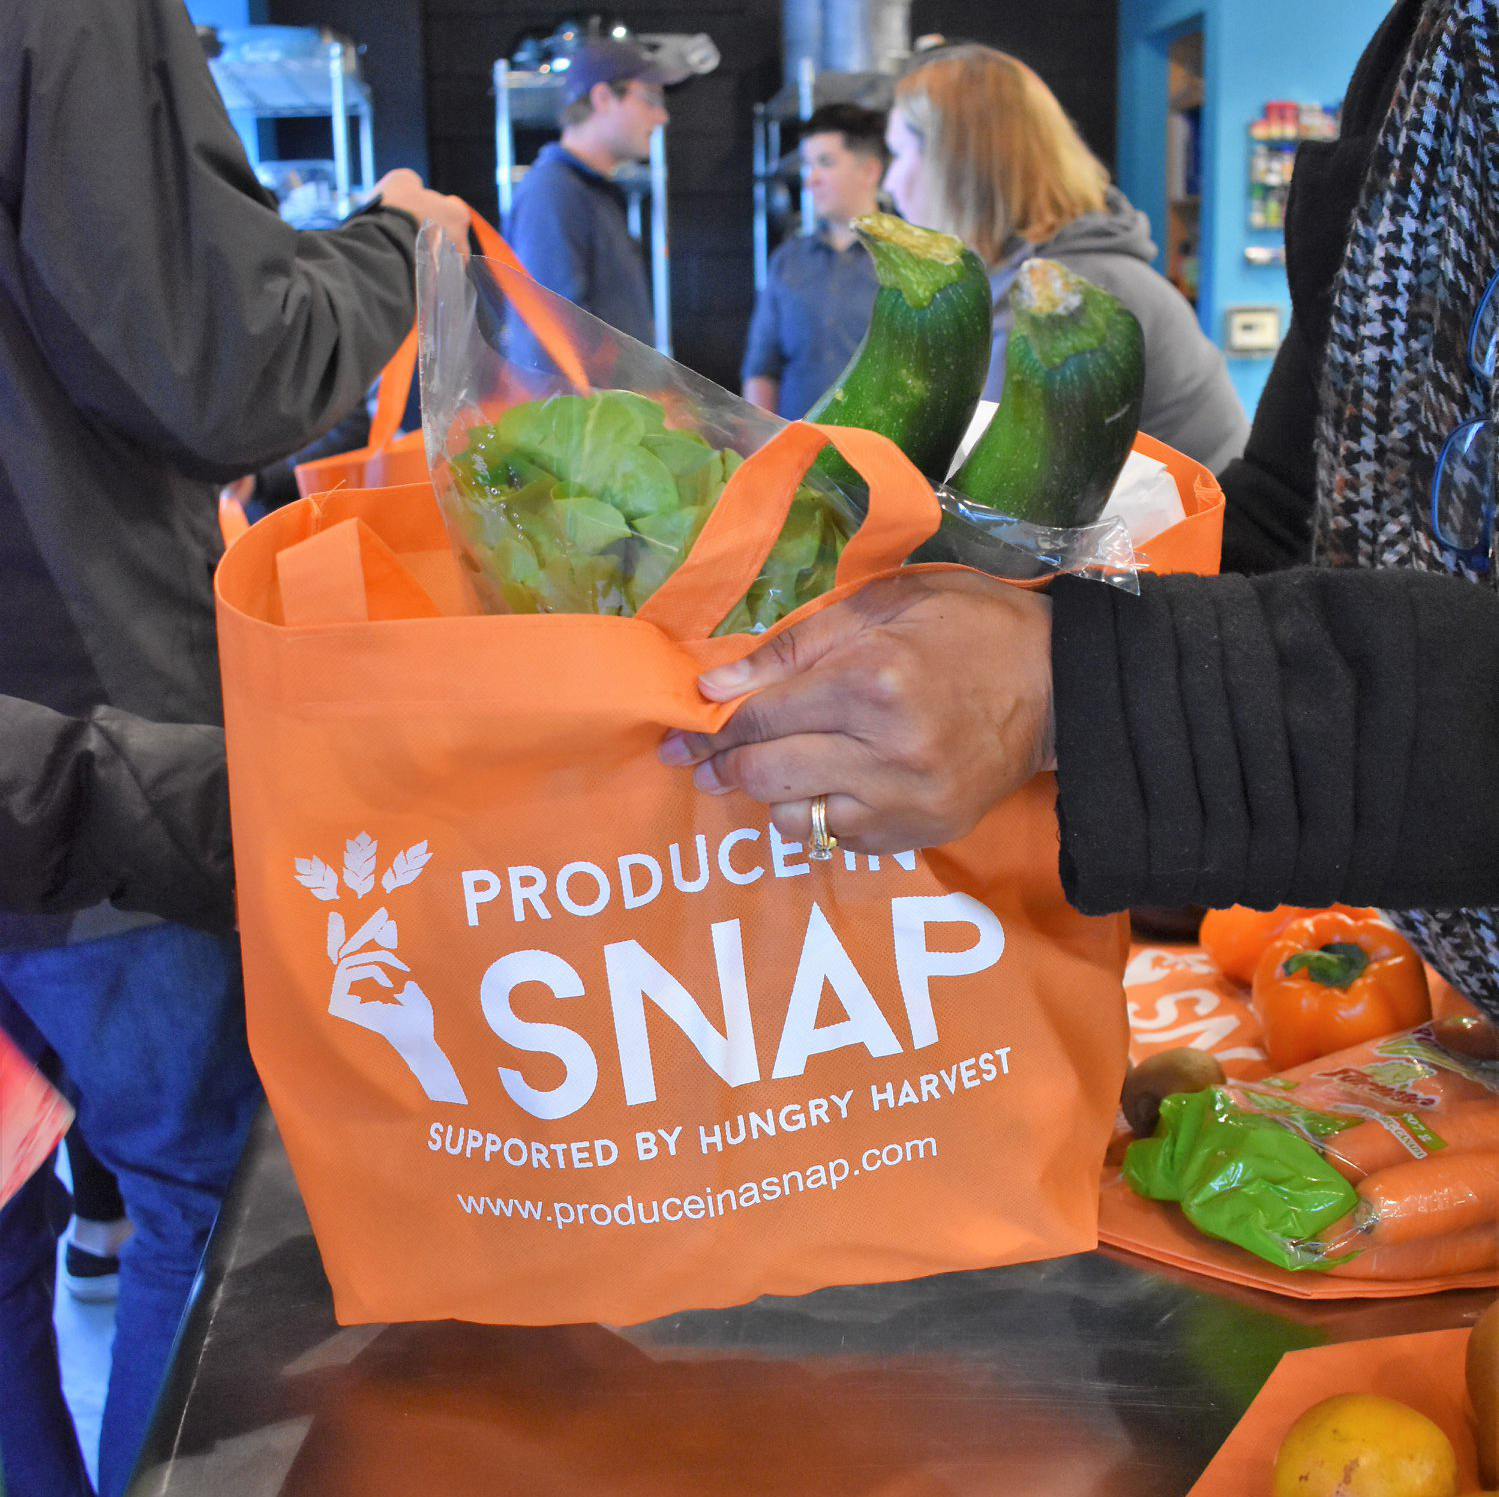 2. 2016: Our First Produce in a SNAP Market -